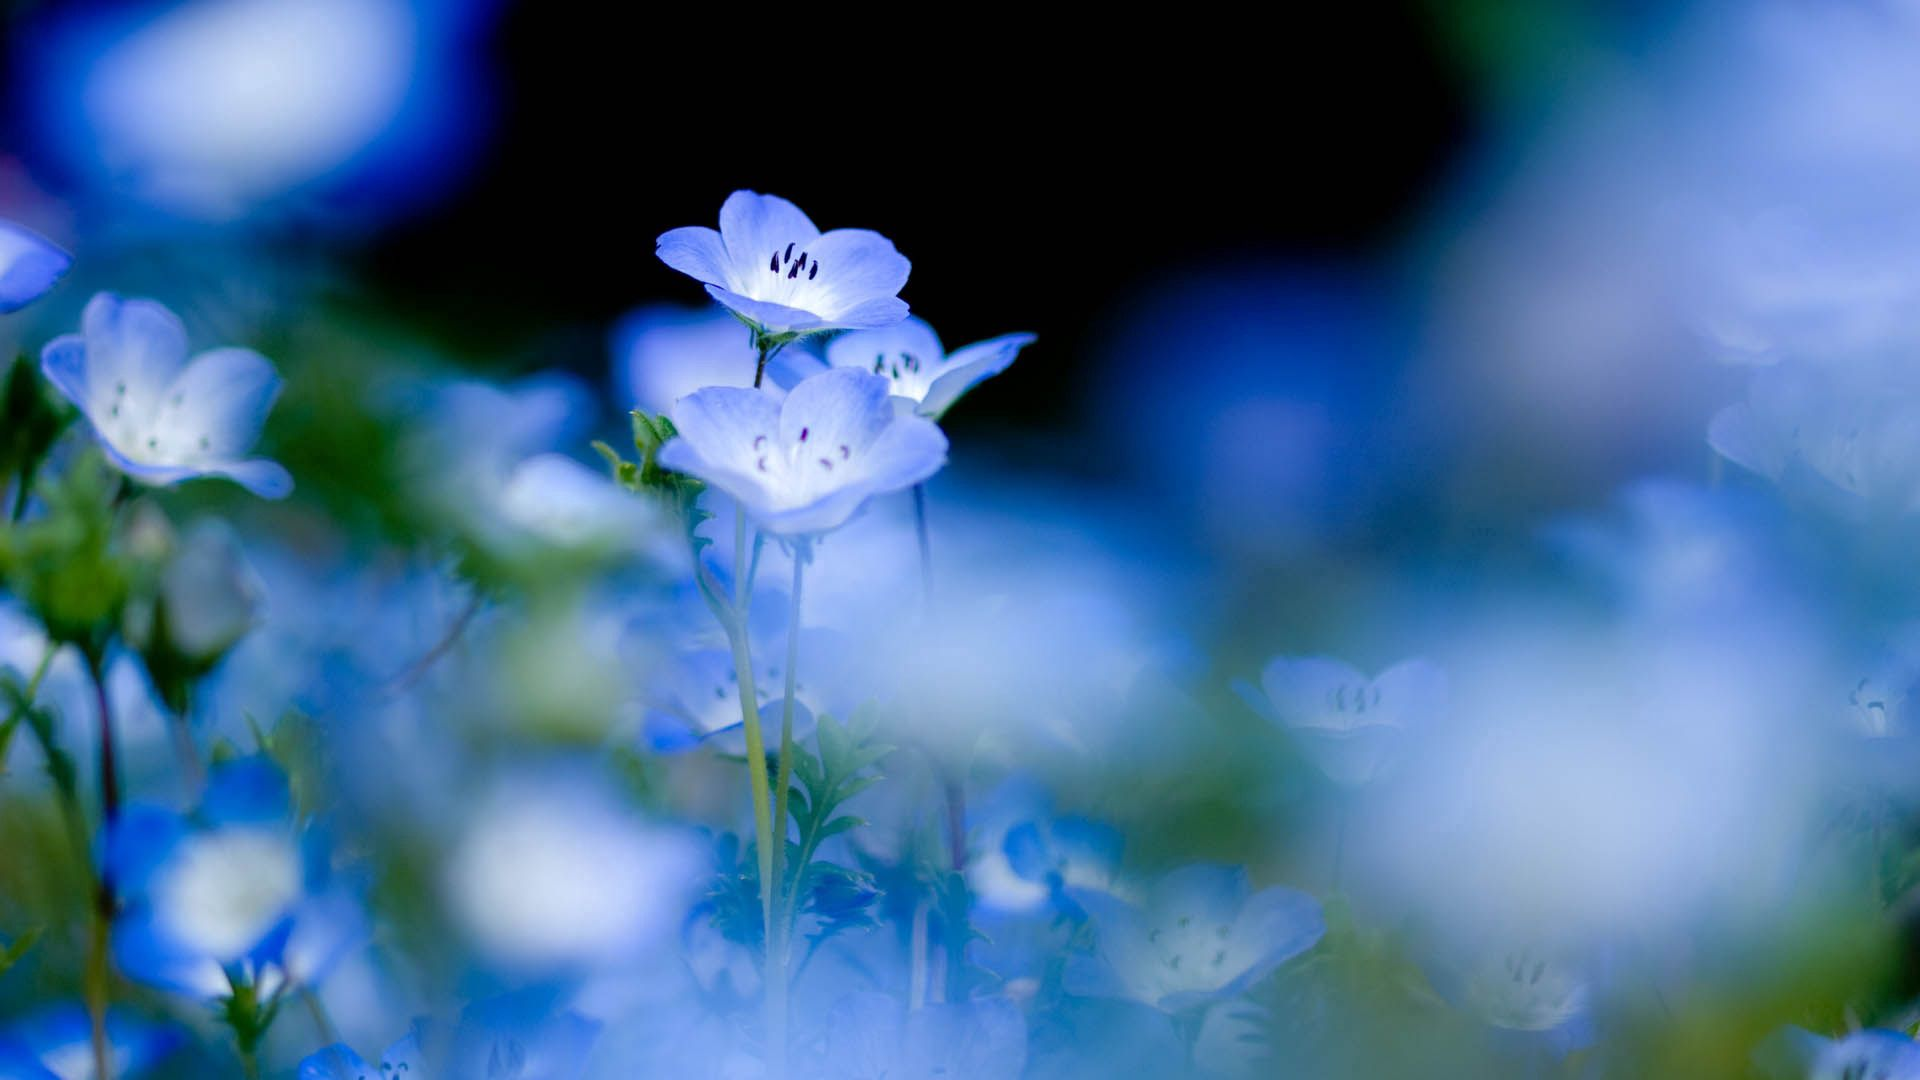 114350 free download Blue wallpapers for phone, Macro, Bloom, Flowering, Flowers Blue images and screensavers for mobile